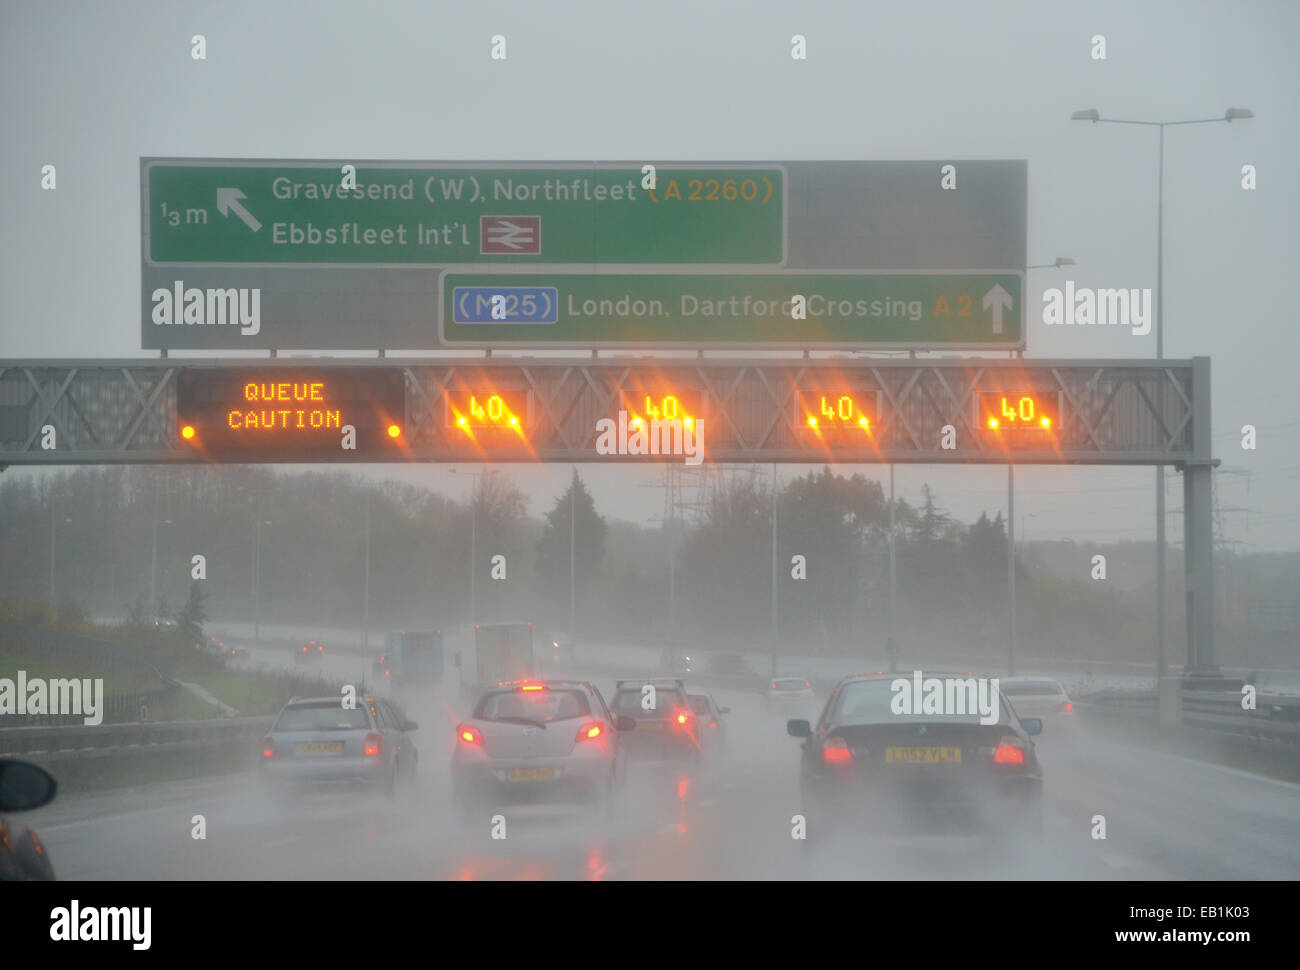 Speed limits and Queue warning signs light up during pouring rain over the M2 motorway in the UK - Stock Image